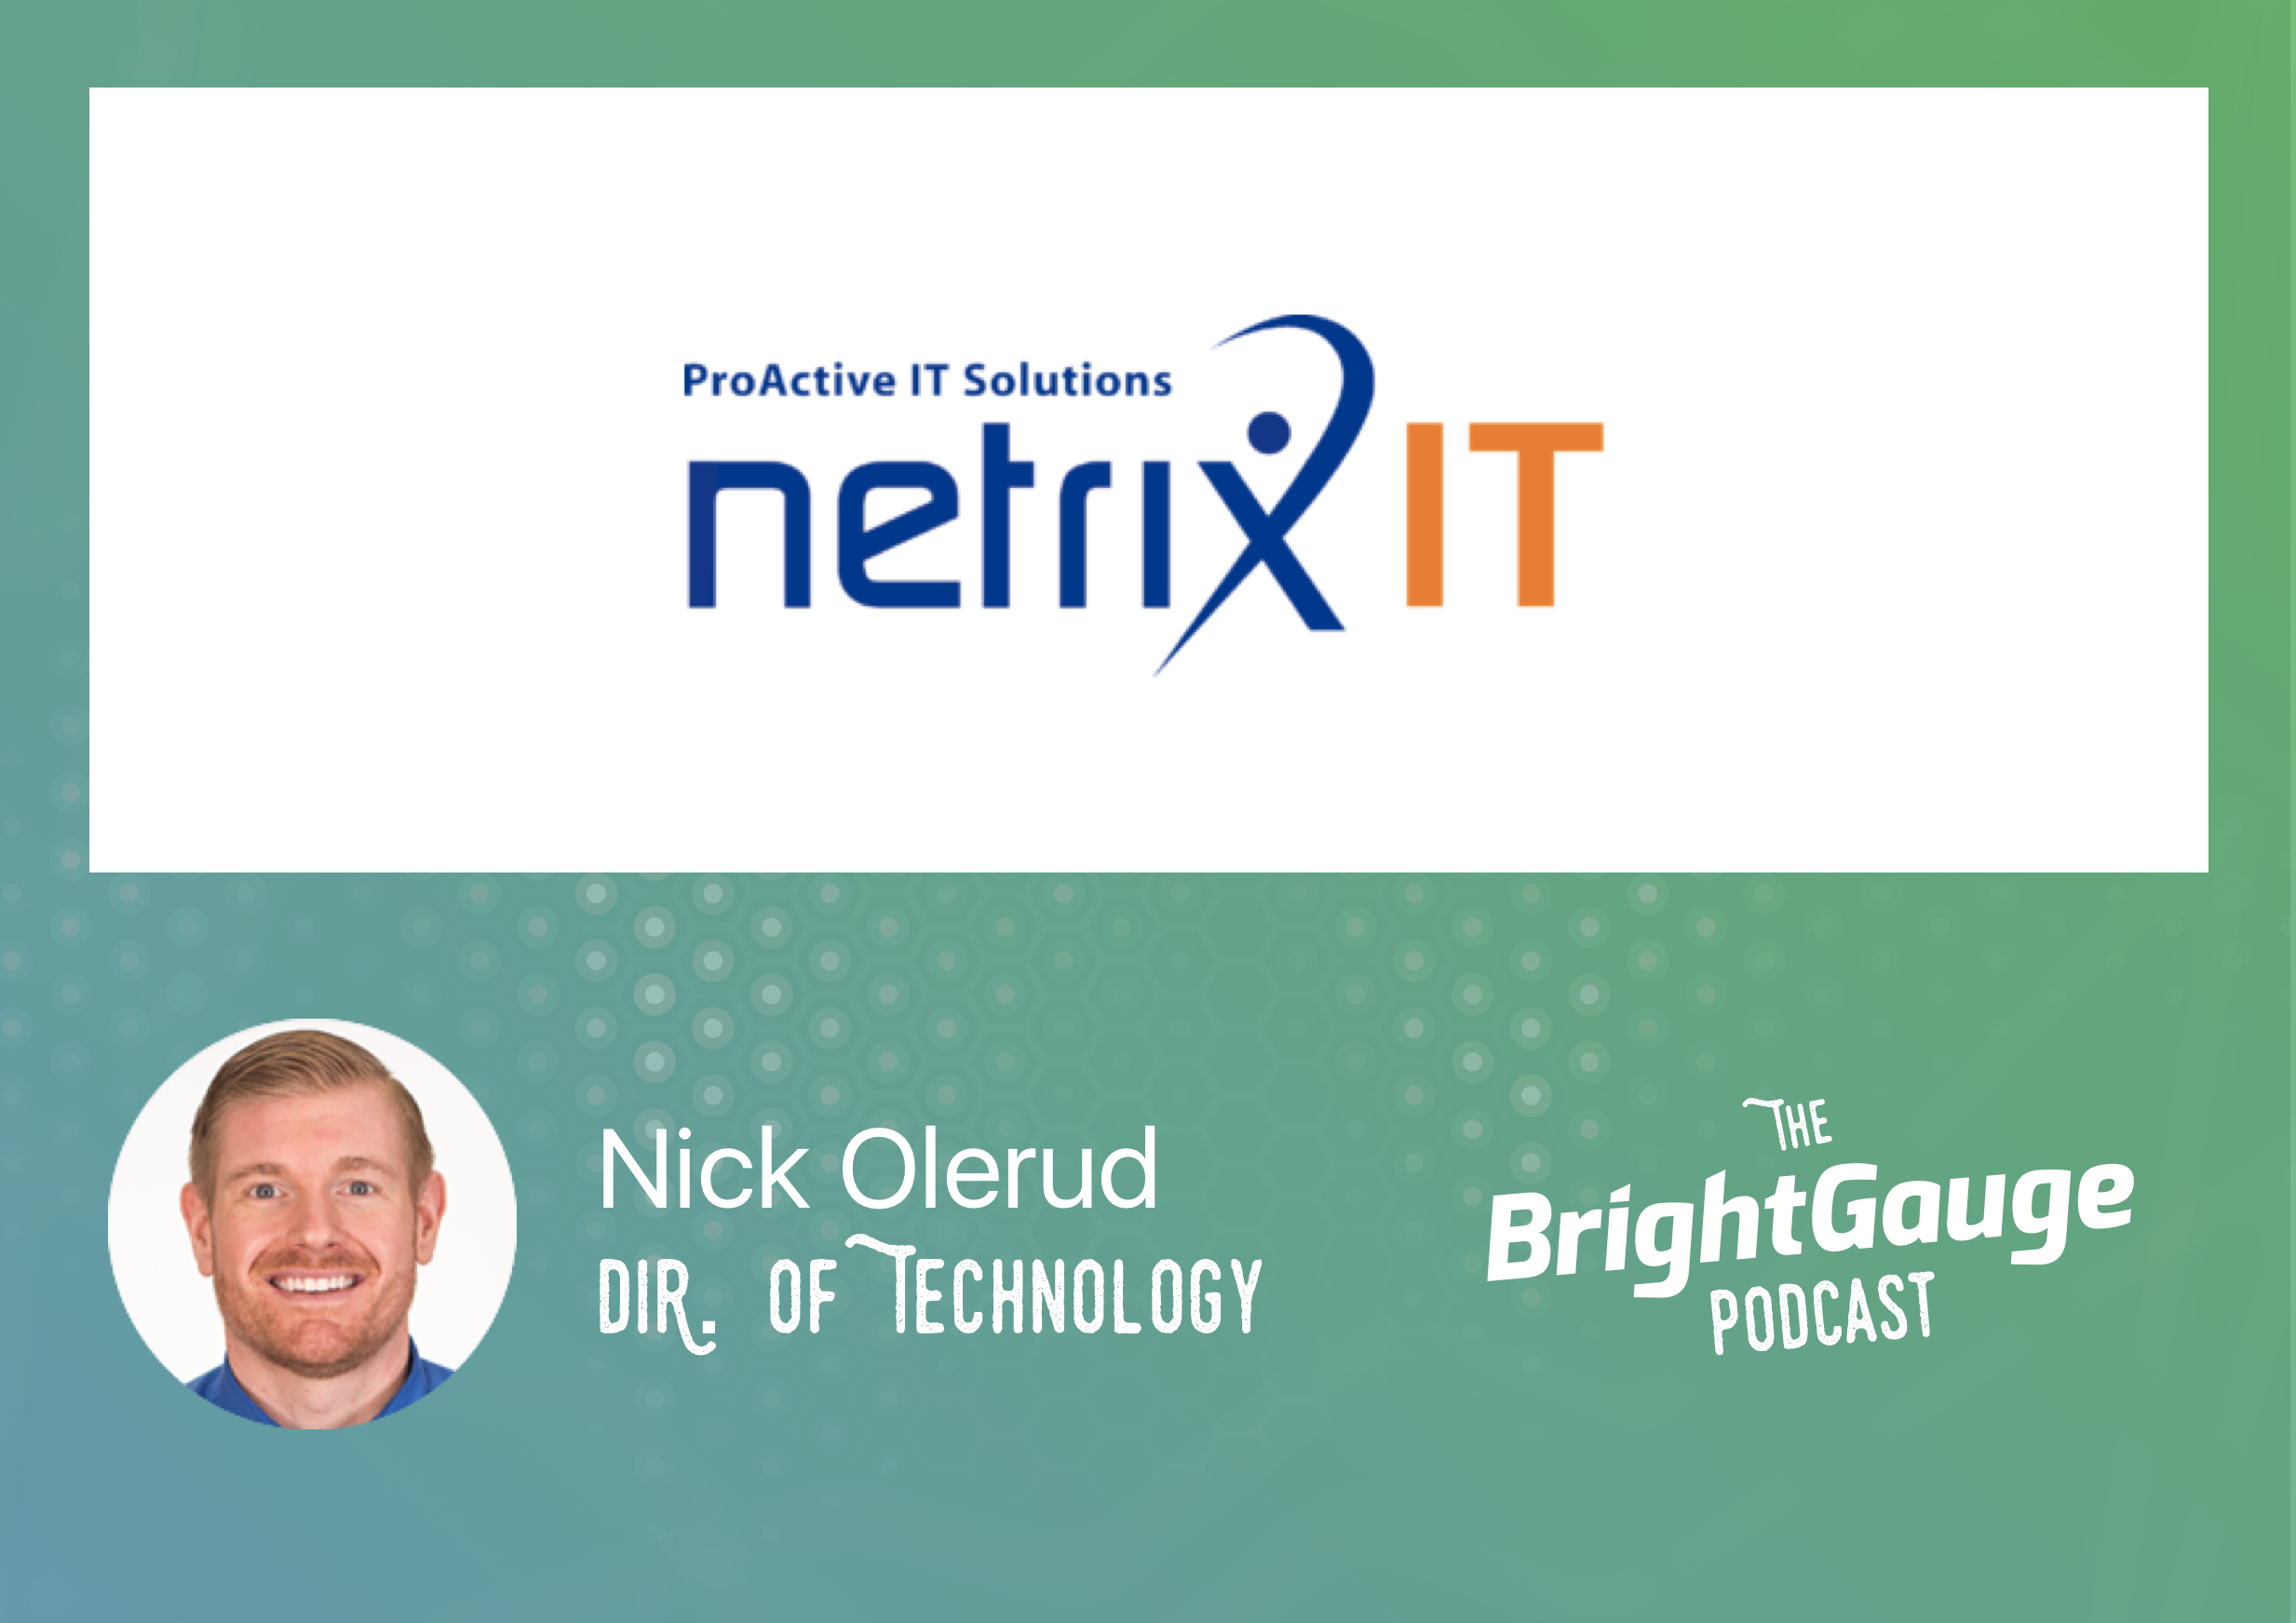 [Podcast] Episode 10 with Nick Olerud of Netrix IT